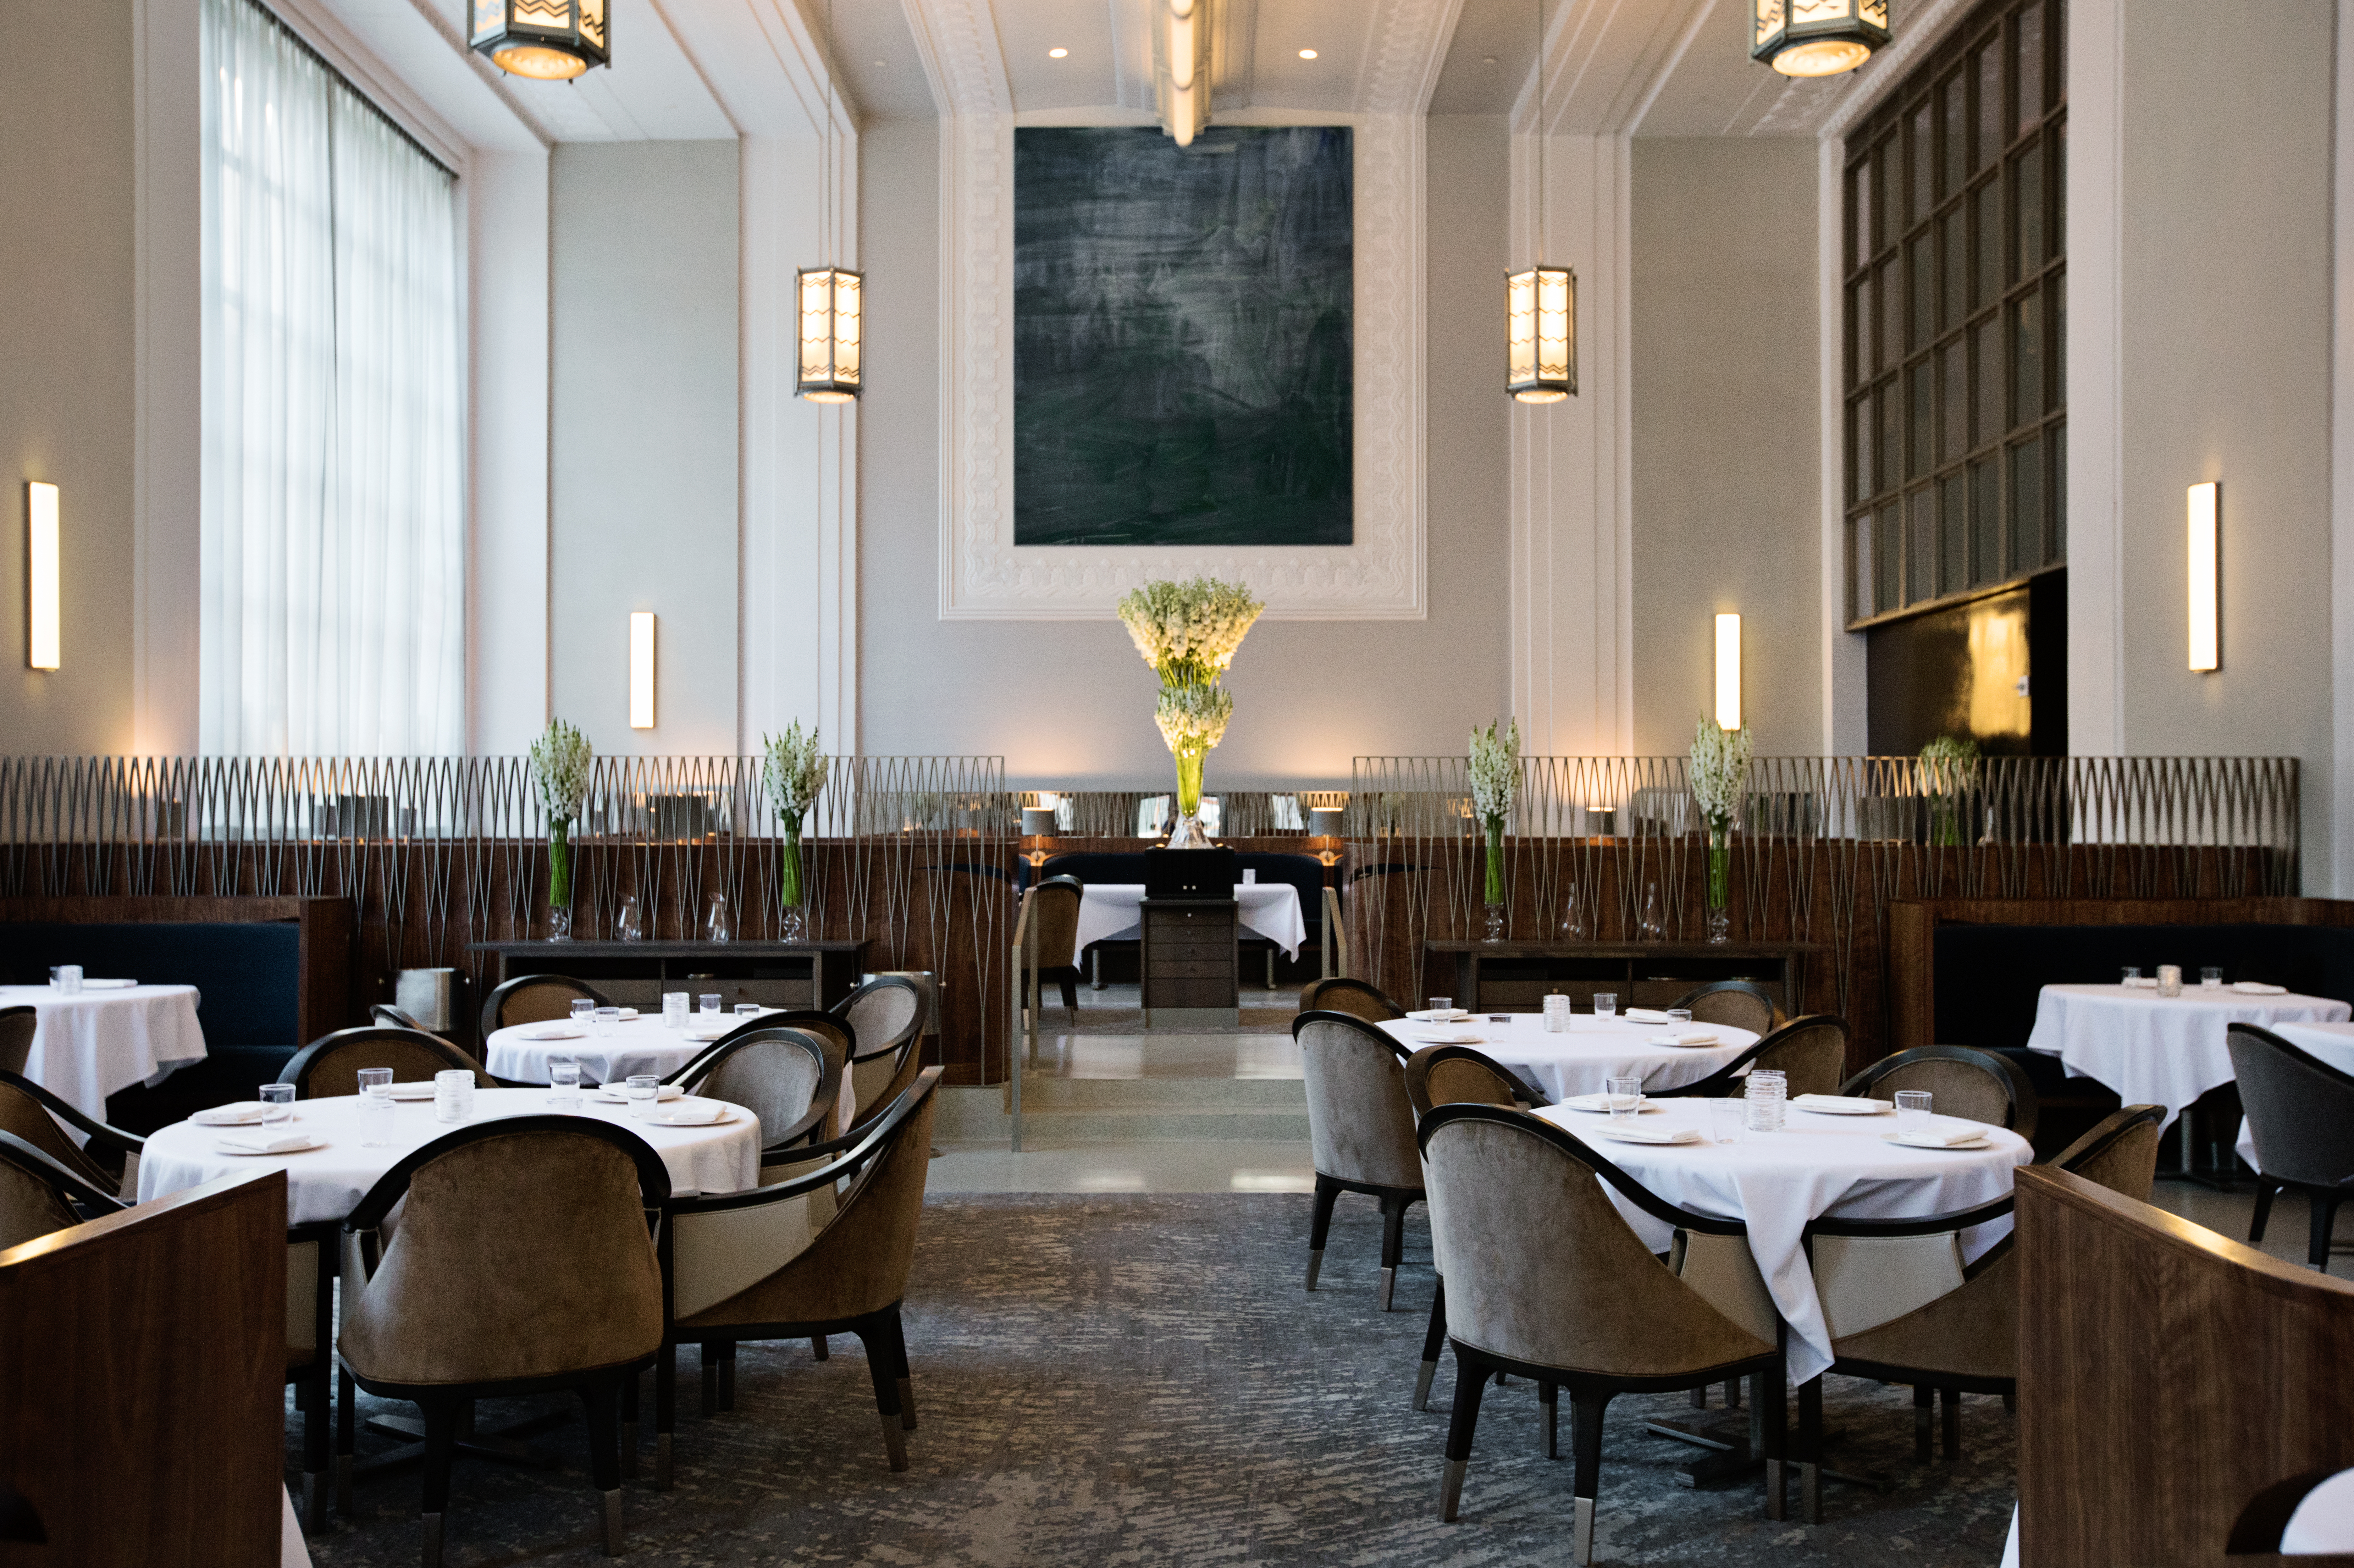 Tables stand empty before service at the cavernous Eleven Madison Park